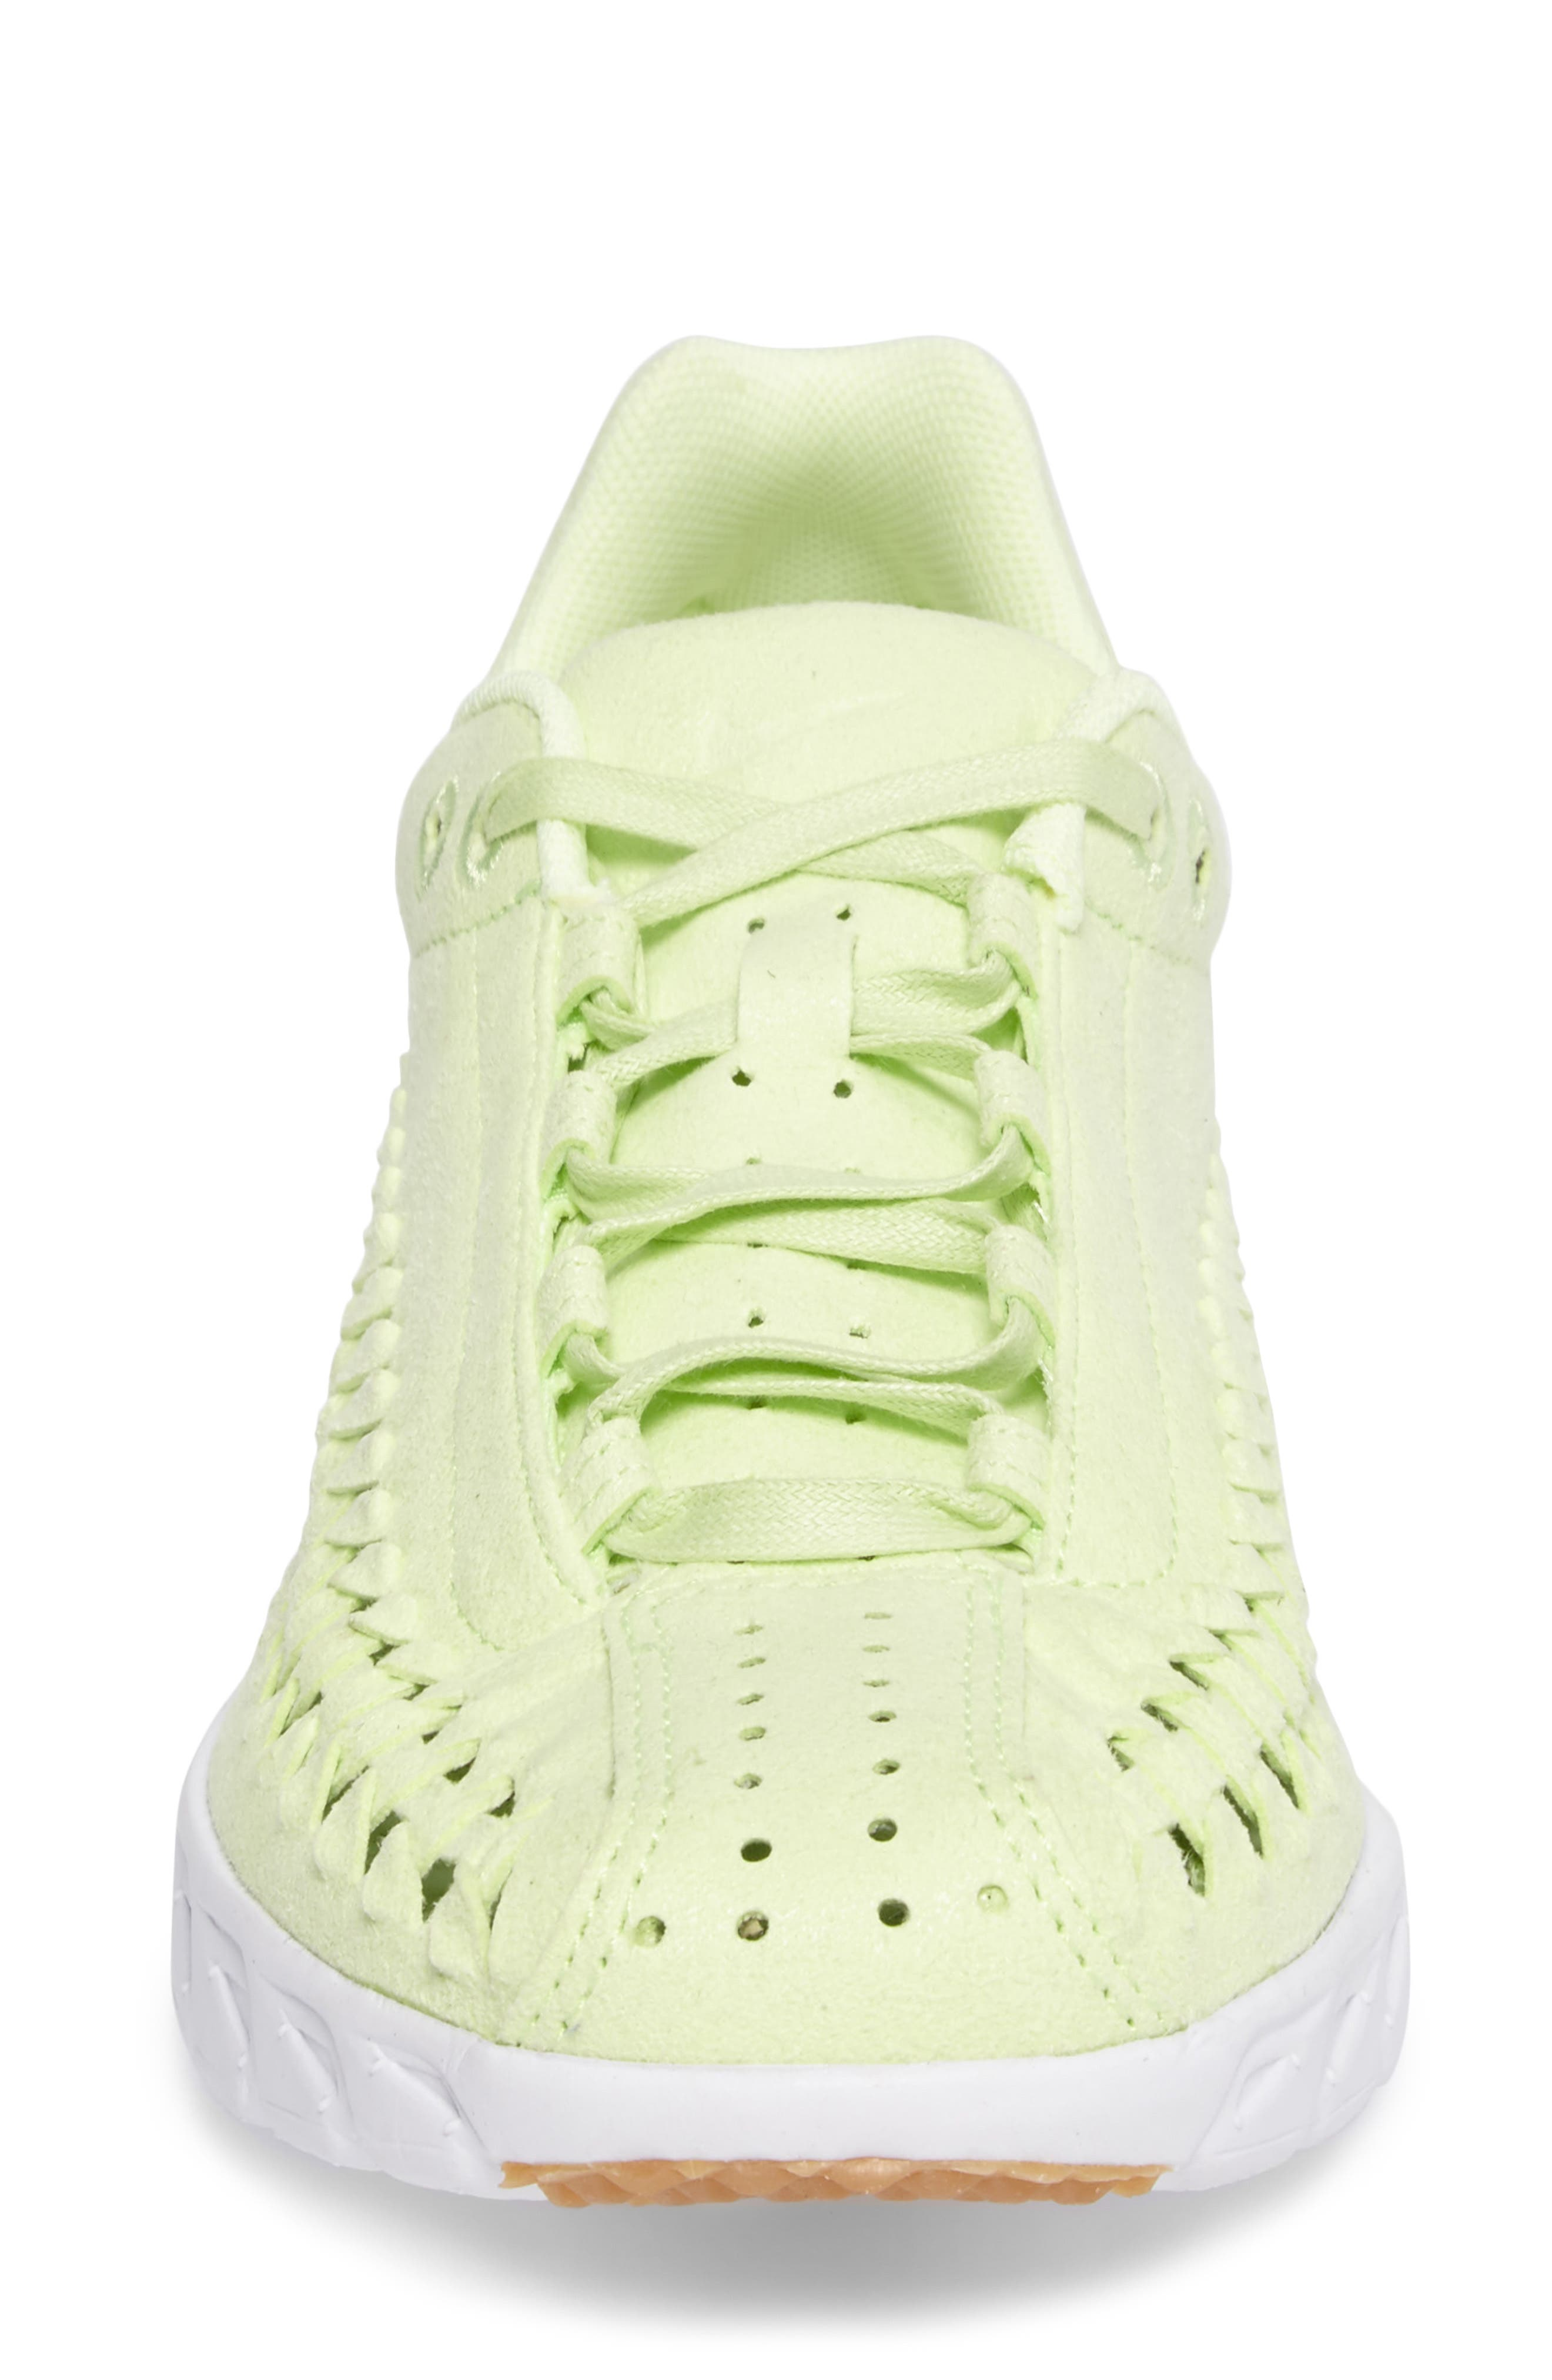 Mayfly Woven QS Sneaker,                             Alternate thumbnail 5, color,                             Liquid Lime/ Liquid Lime